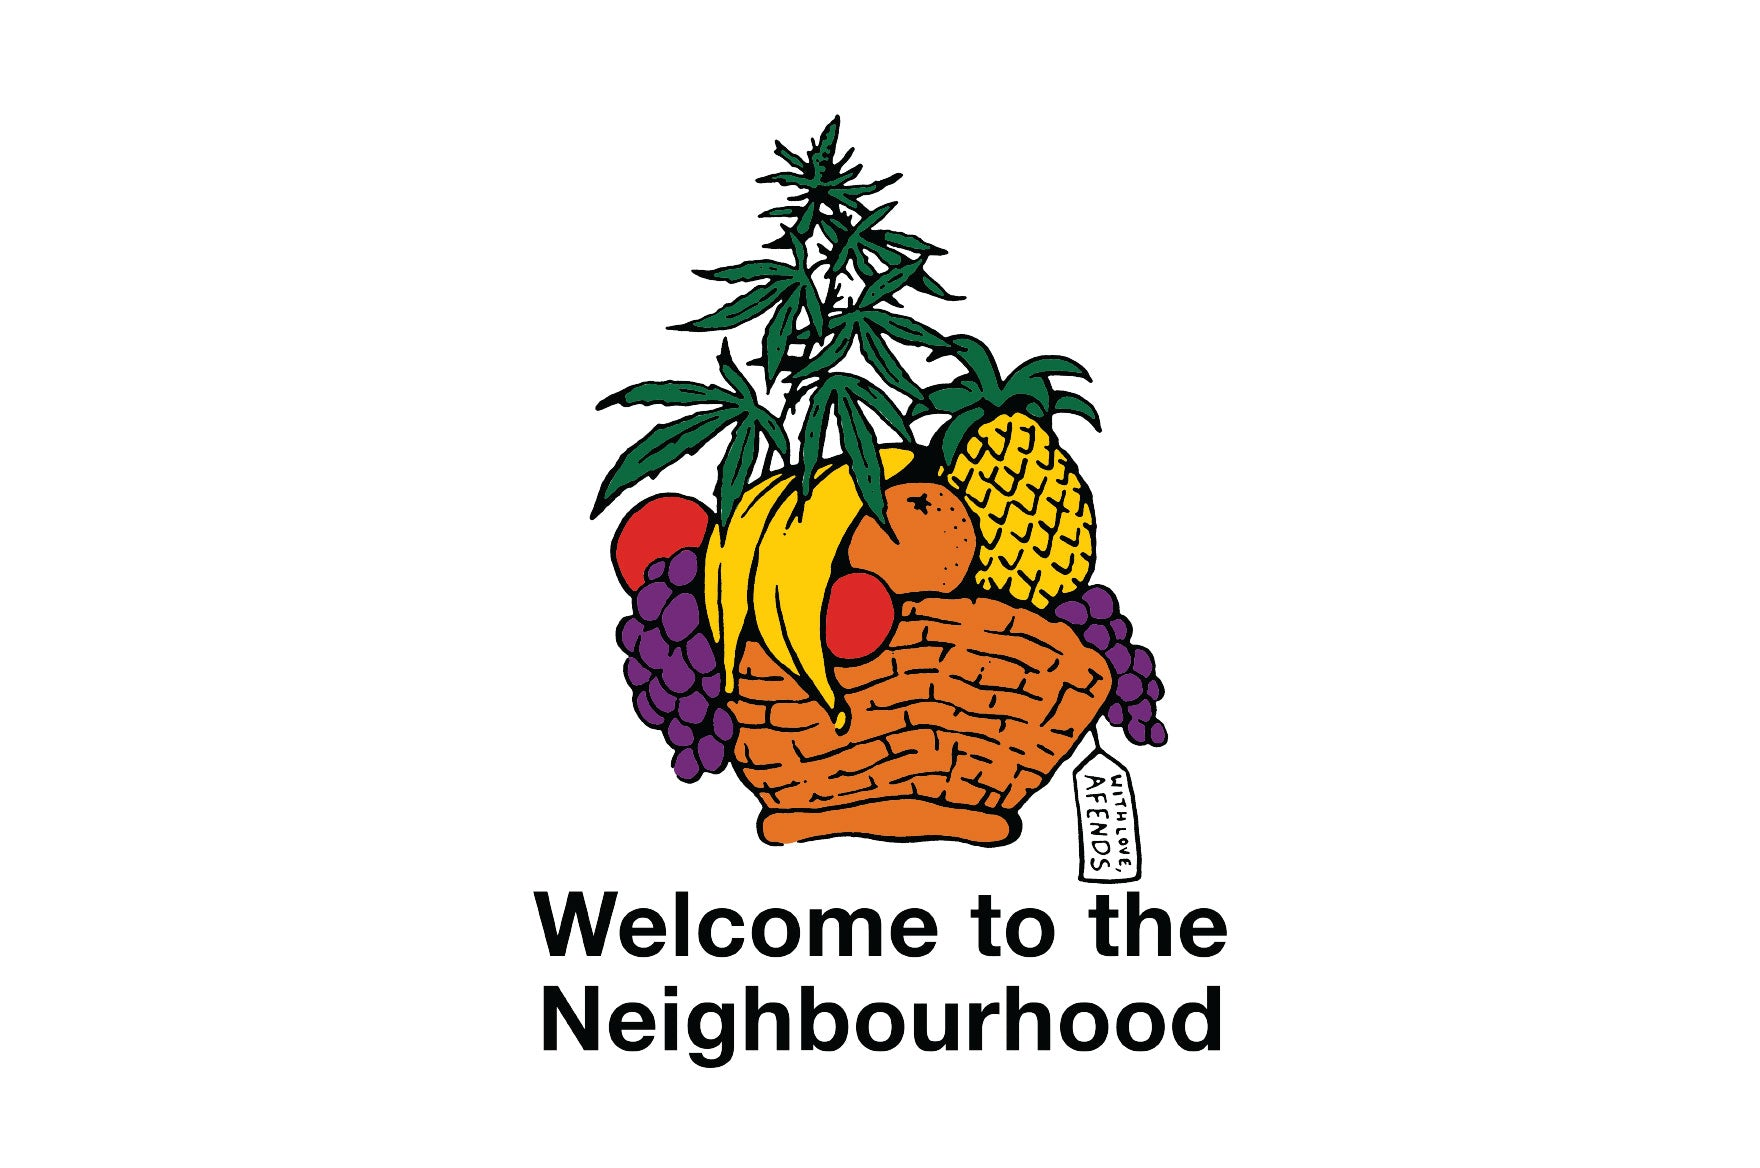 Welcome to the Neighbourhood.